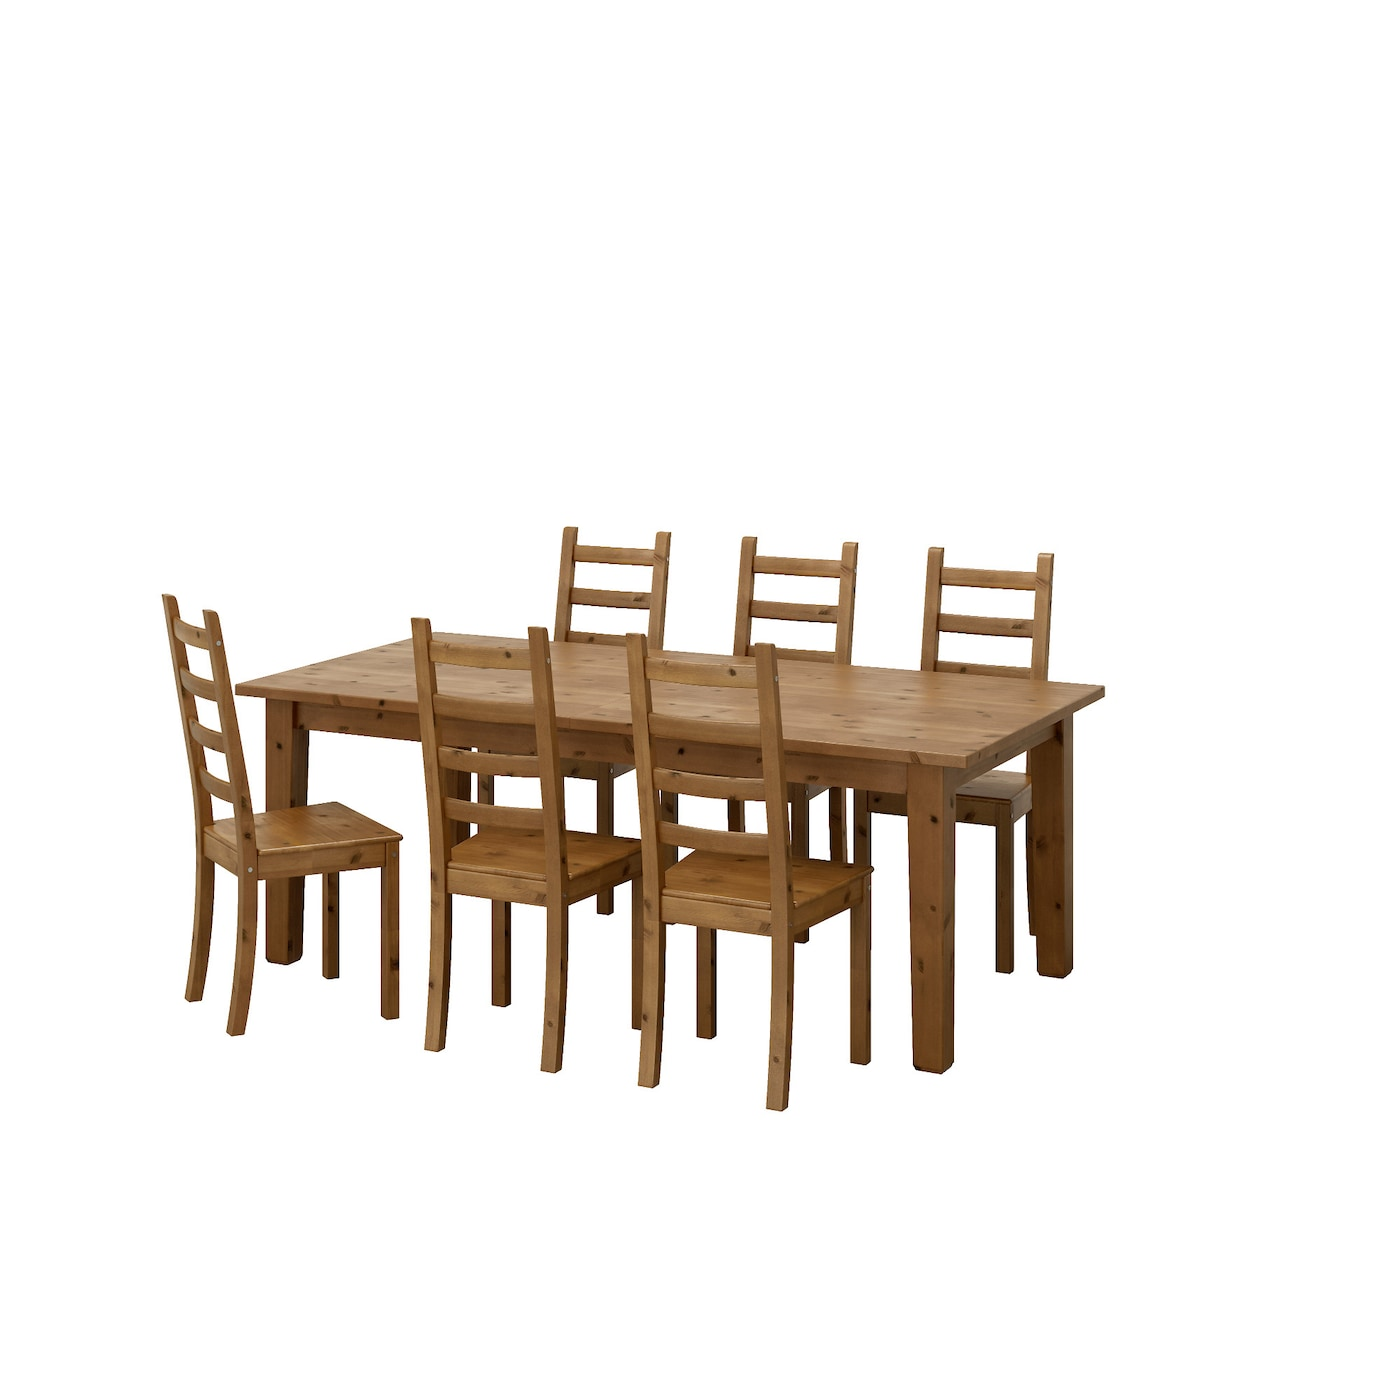 Kaustby storn s table and 6 chairs antique stain 201 cm ikea - Ikea tables et chaises ...